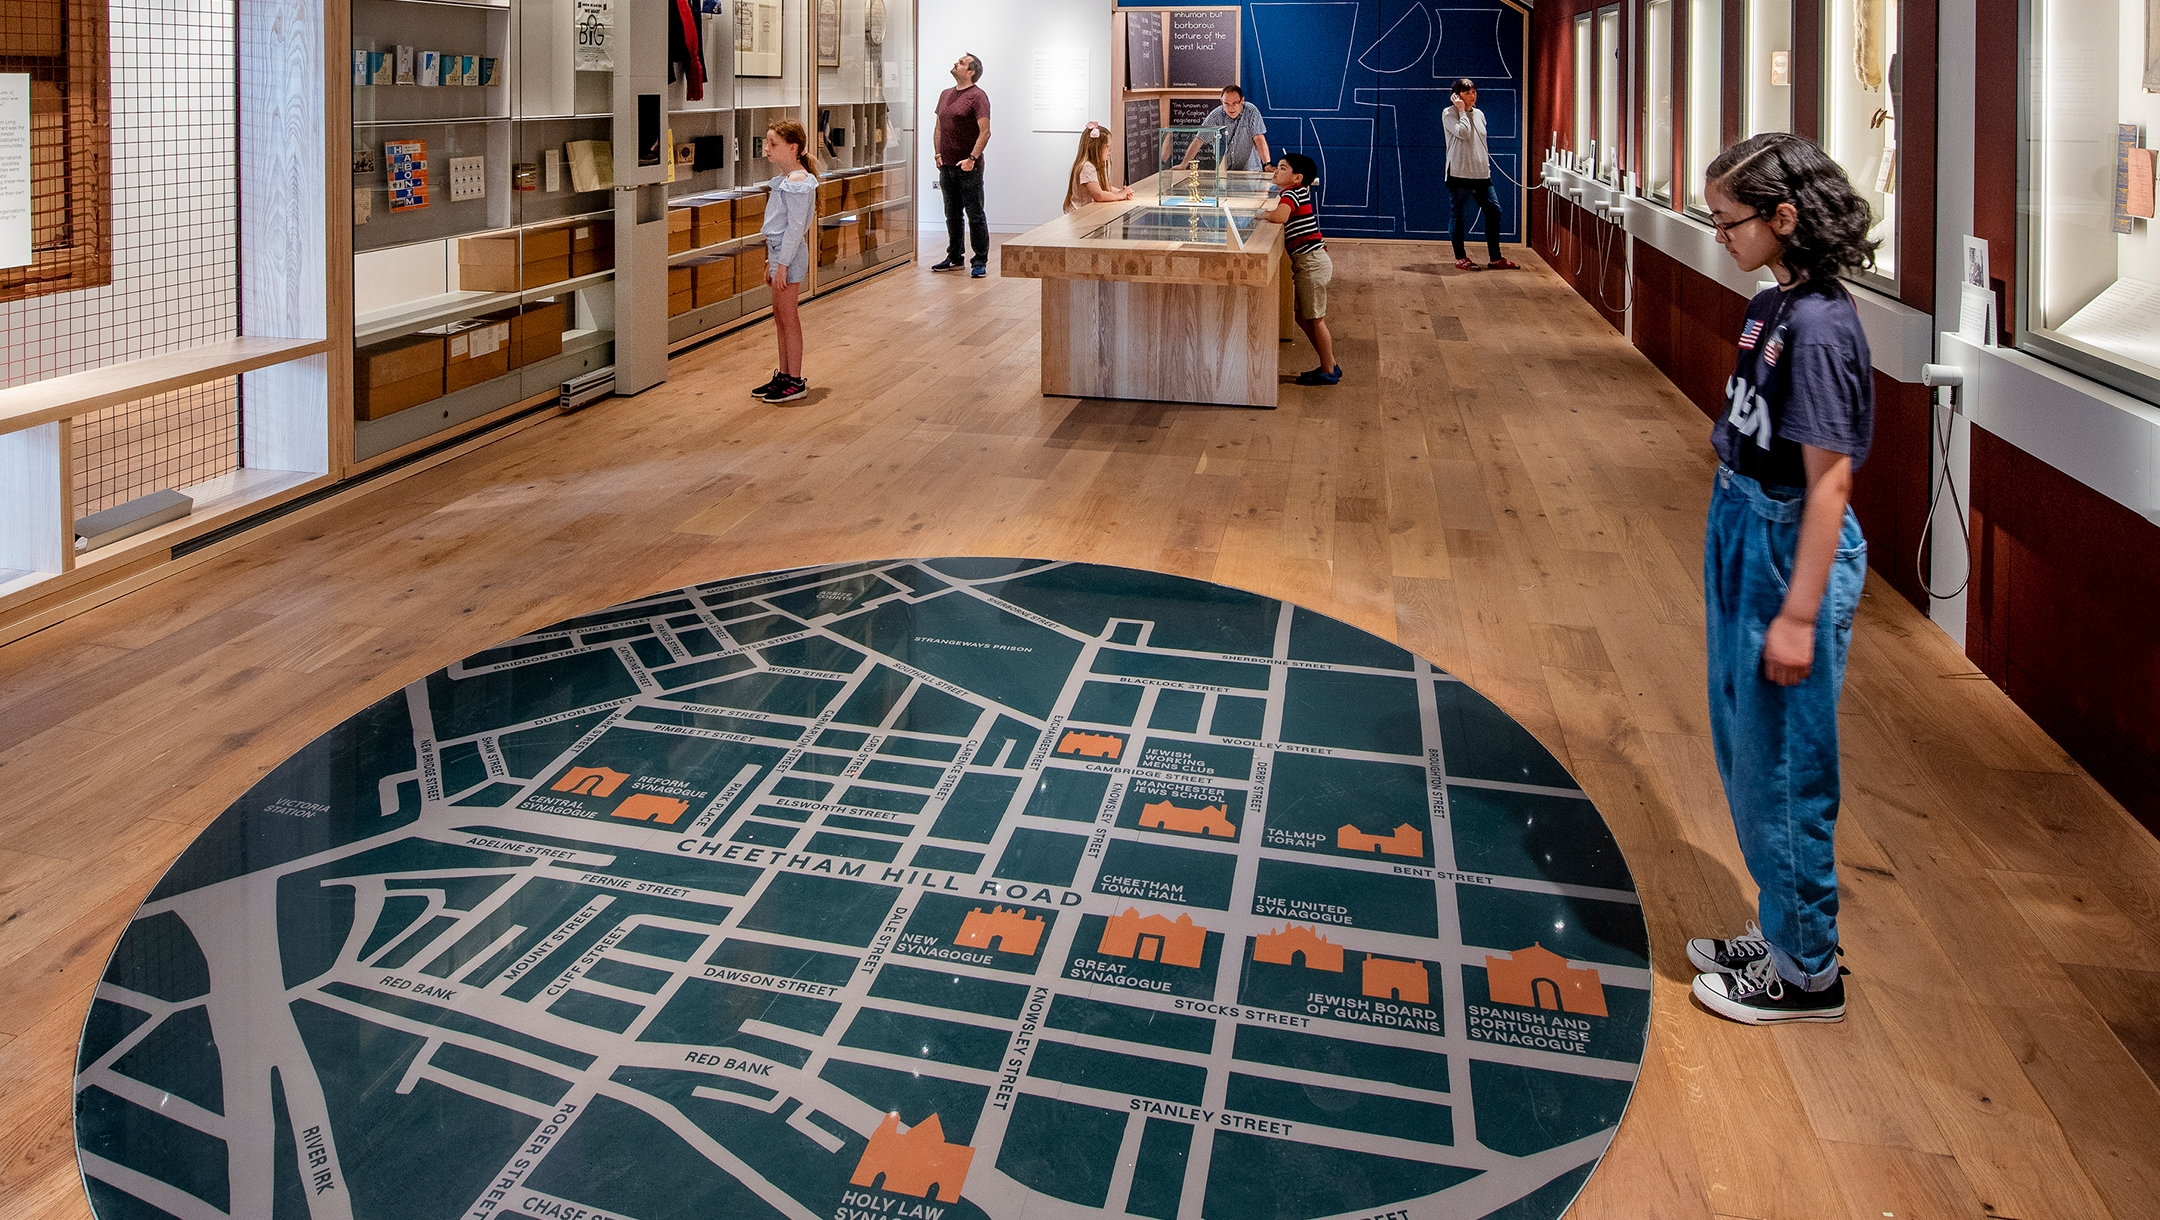 A child studies the giant map on the floor of the atrium of the Manchester Jewish Museum in Manchester, UK on June 4, 2021. (Chris Payne)